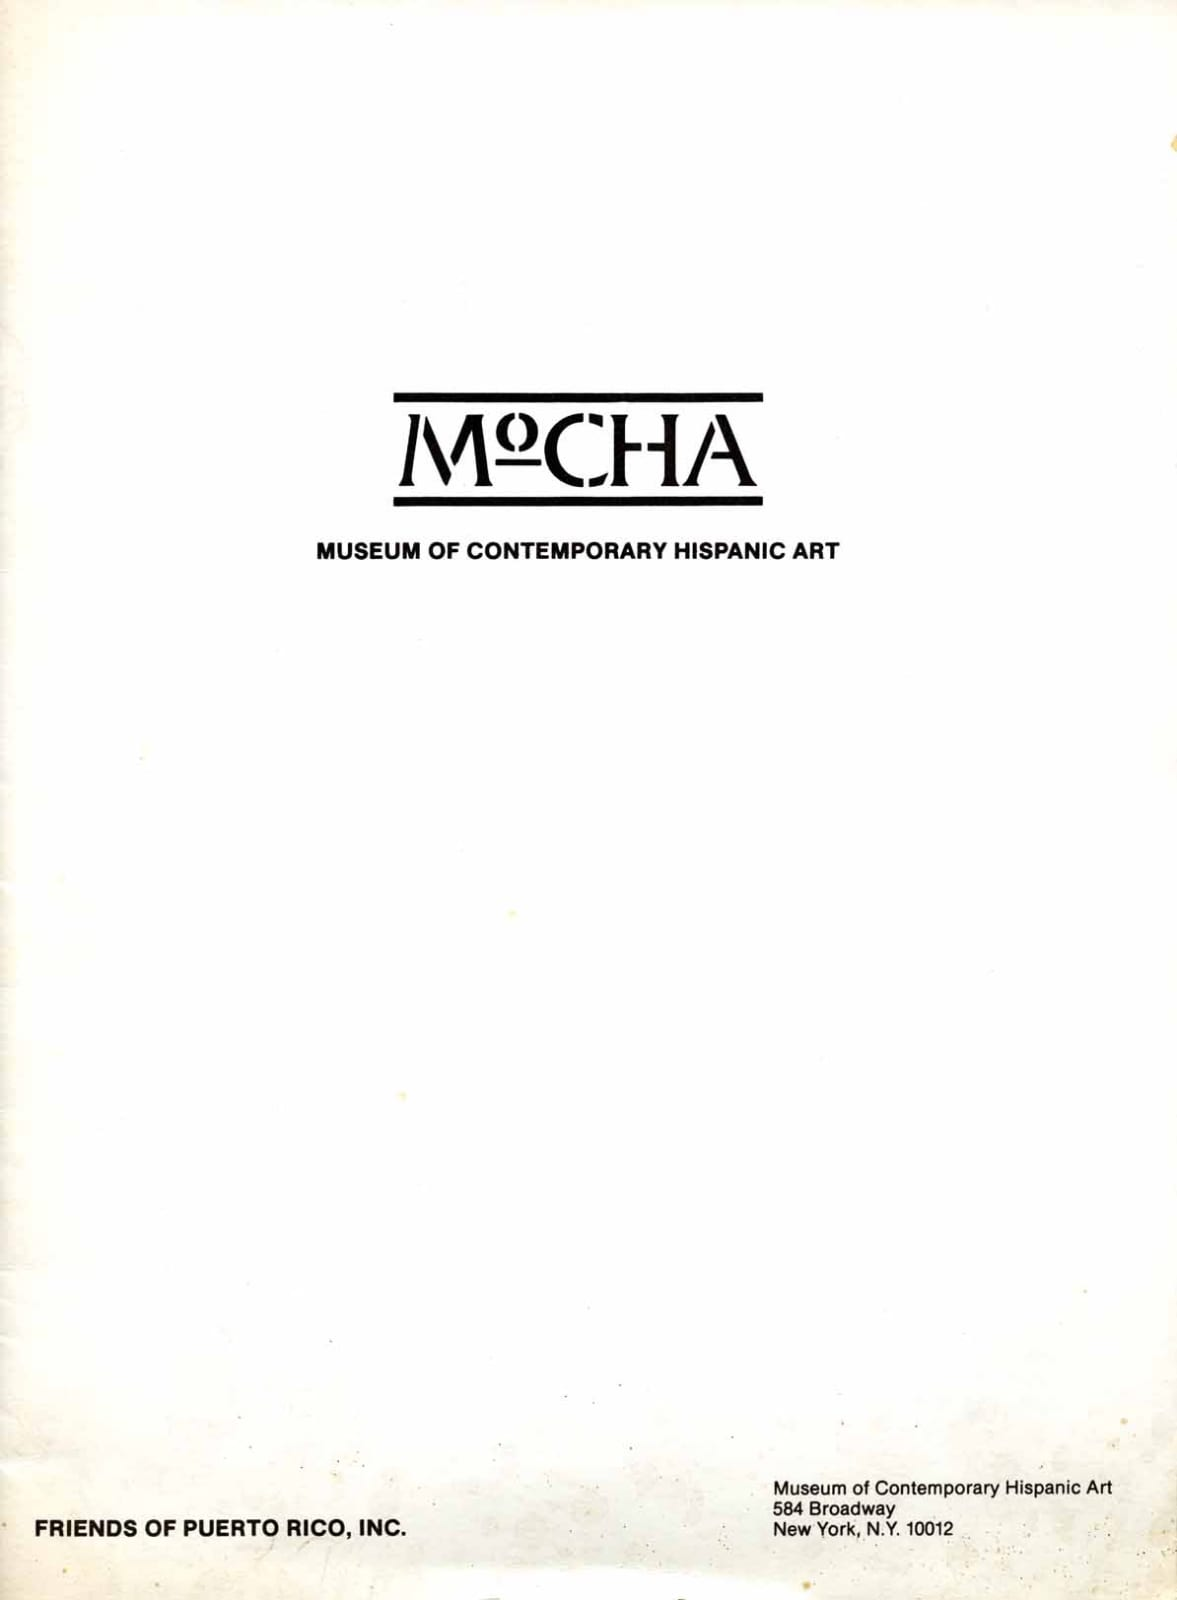 Musuem of Contemporary Hispanic Art (MoCHA) Inaguration Letter, front page, 1985